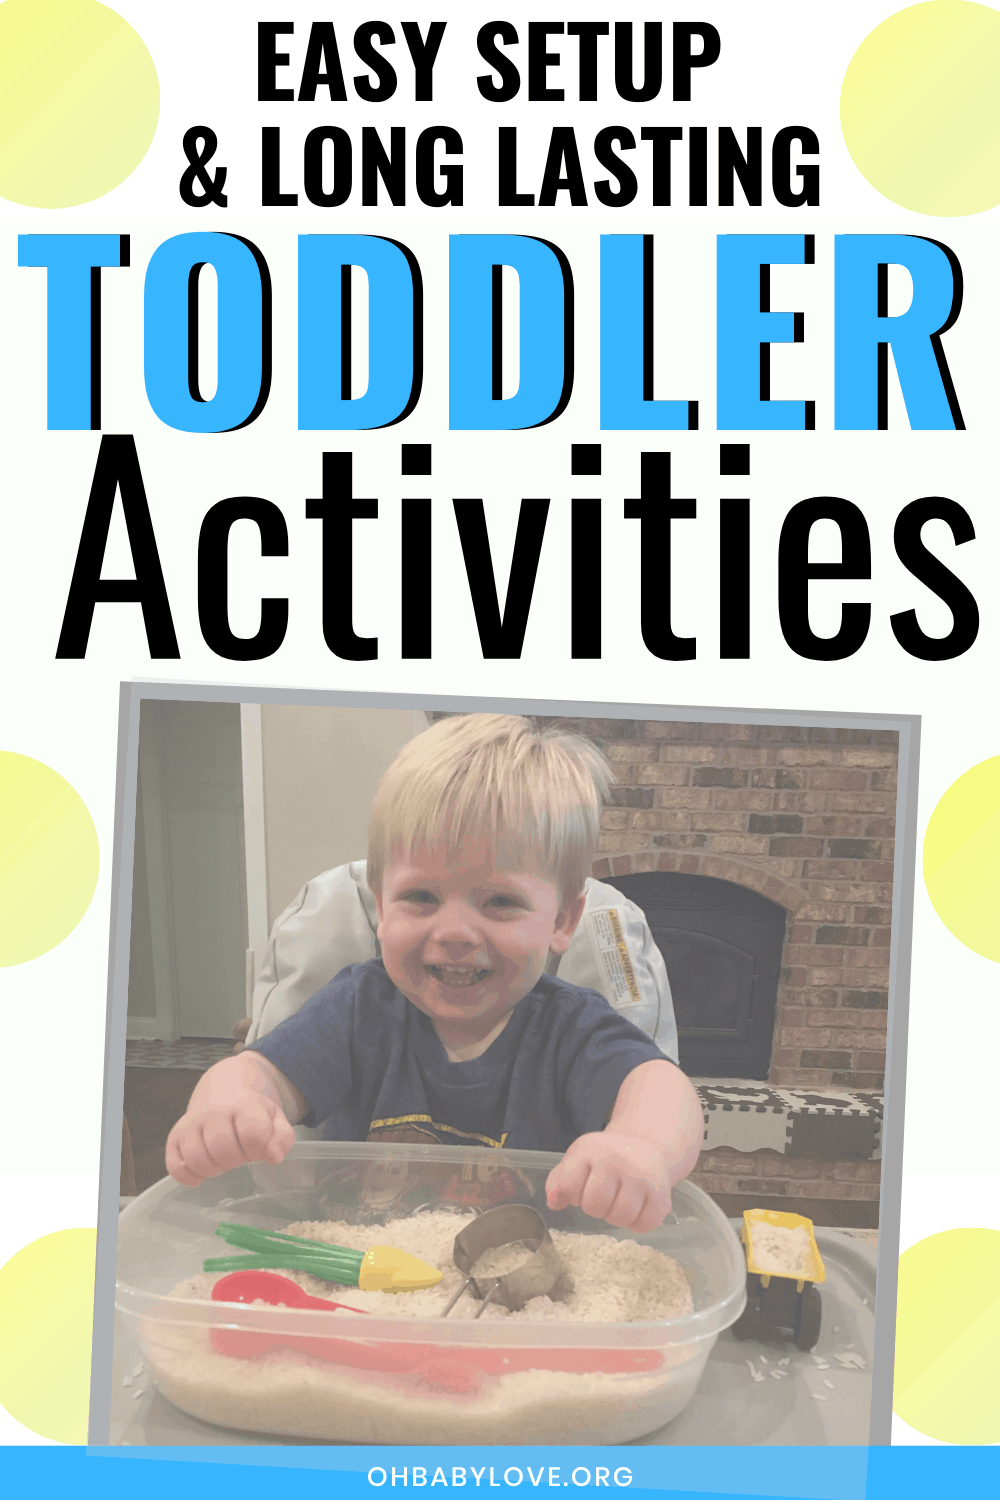 Toddler Activities 2 Year Old: Little Prep Time Using Household Items #toddleractivities #toddleractivitiesindoor